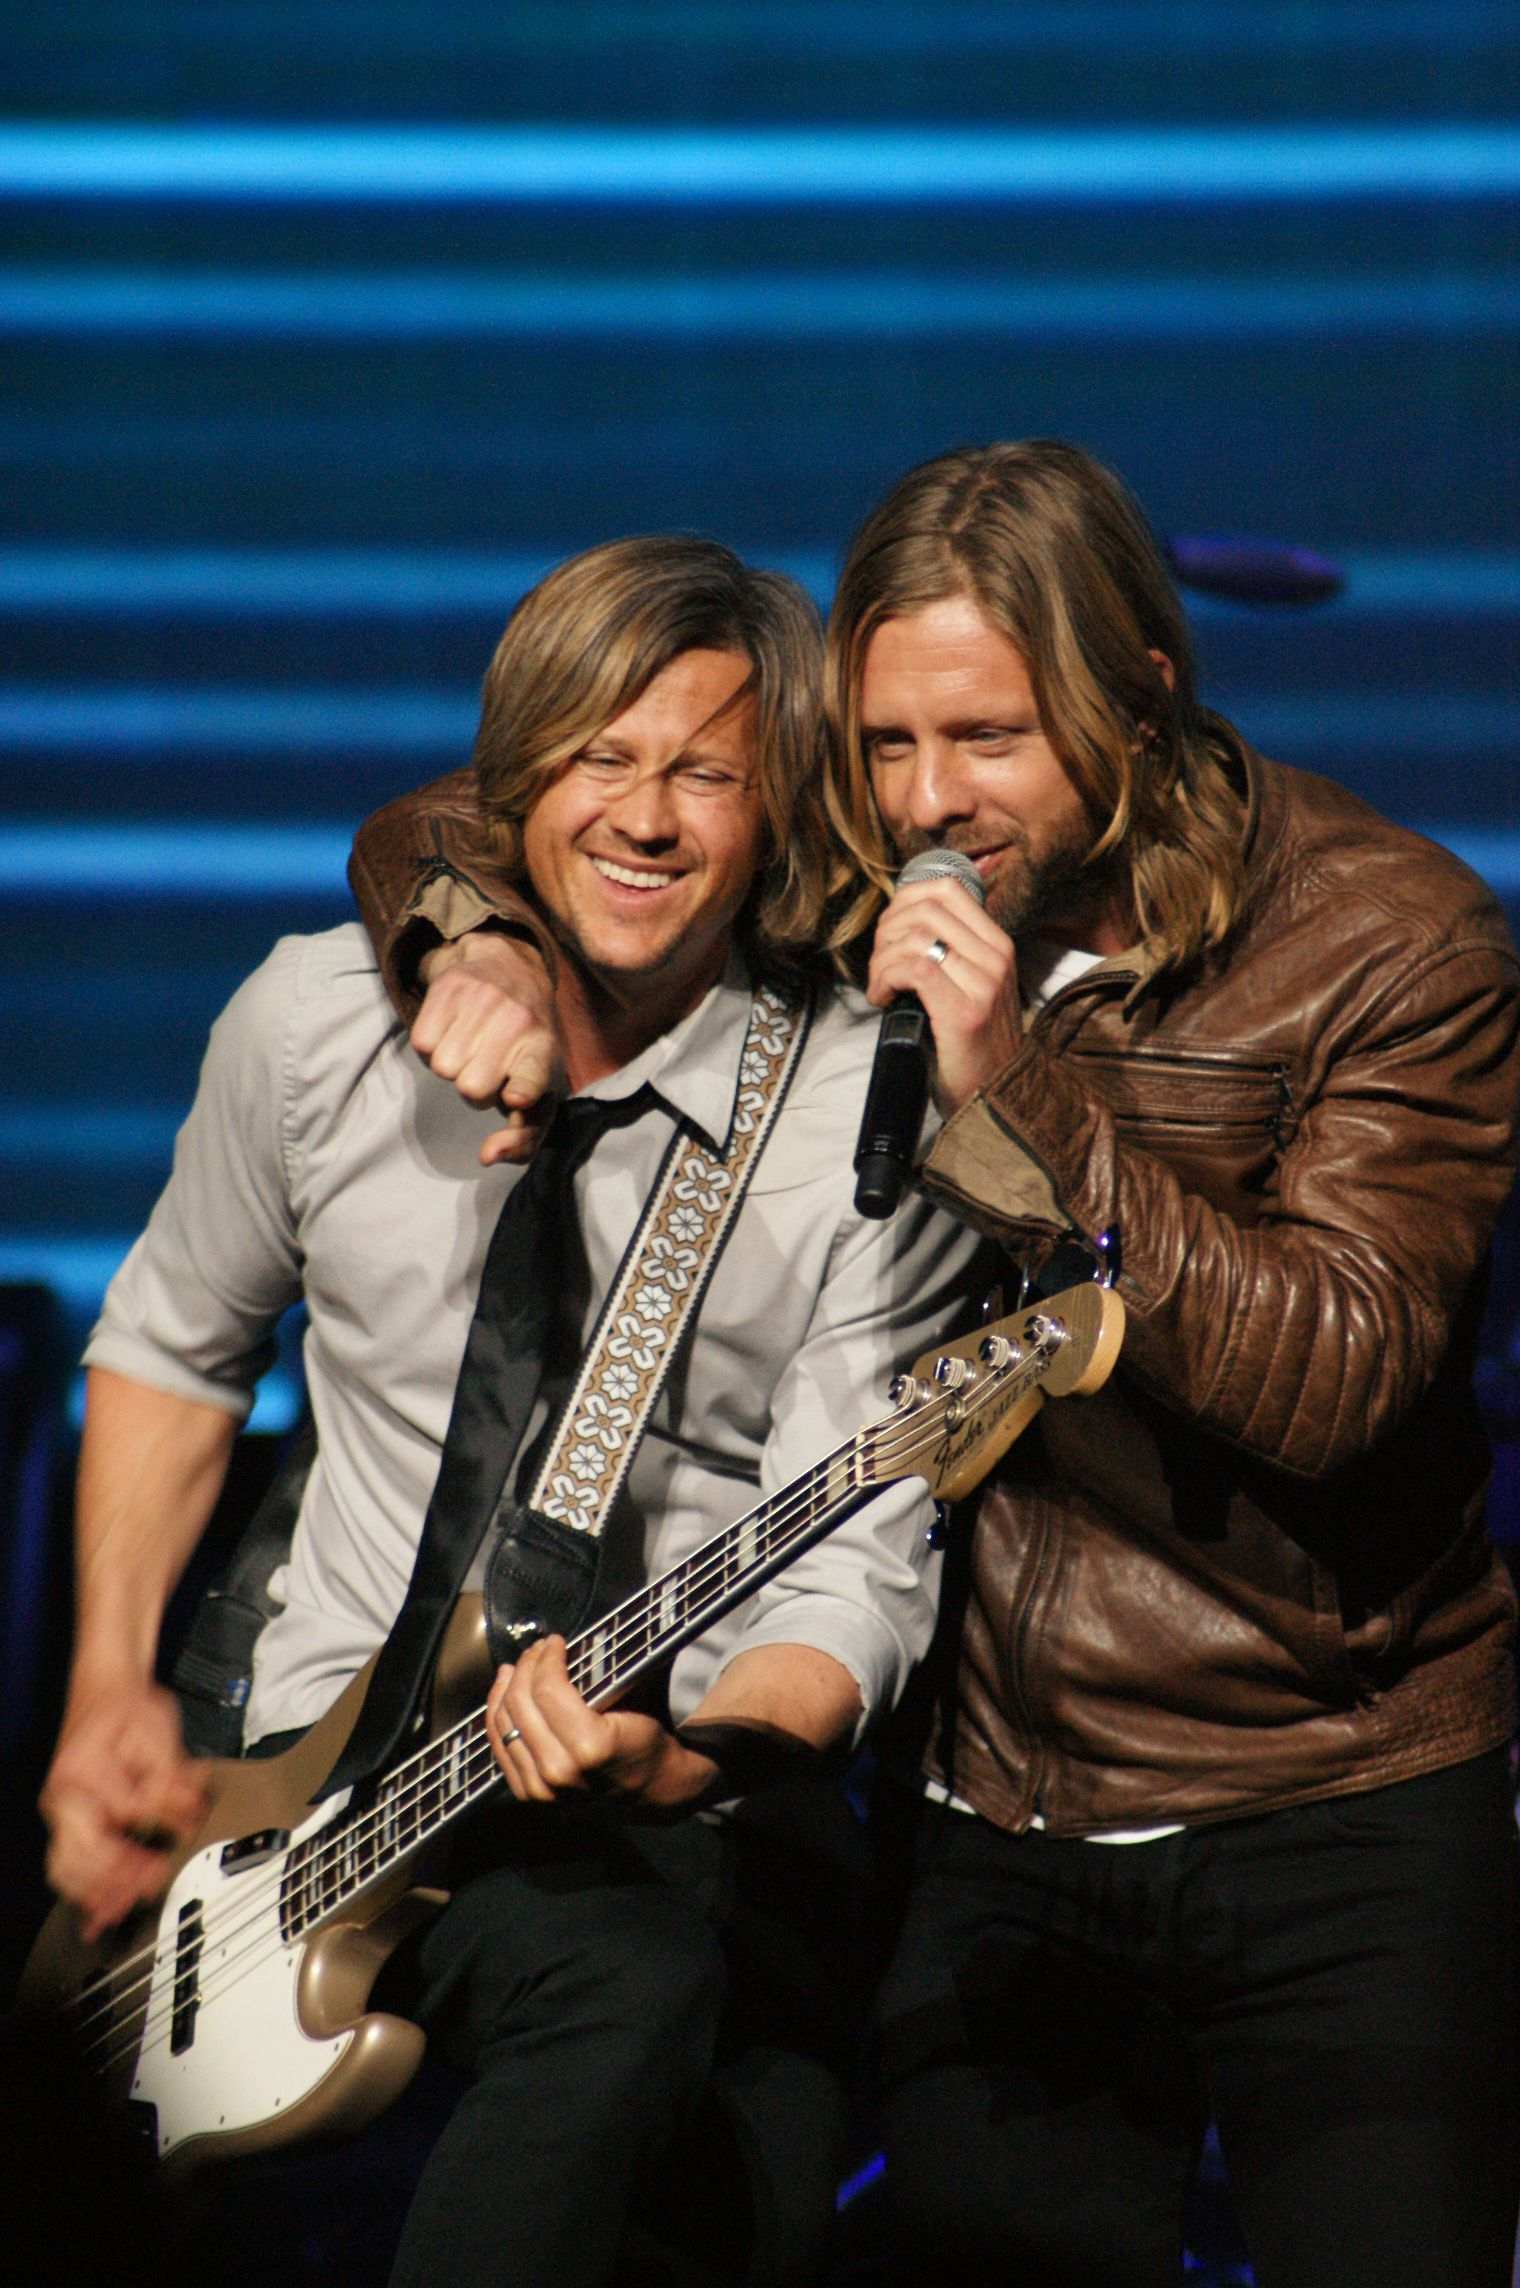 Brotherly Love And Respect Tim Jon Foreman Of Switchfoot Bands